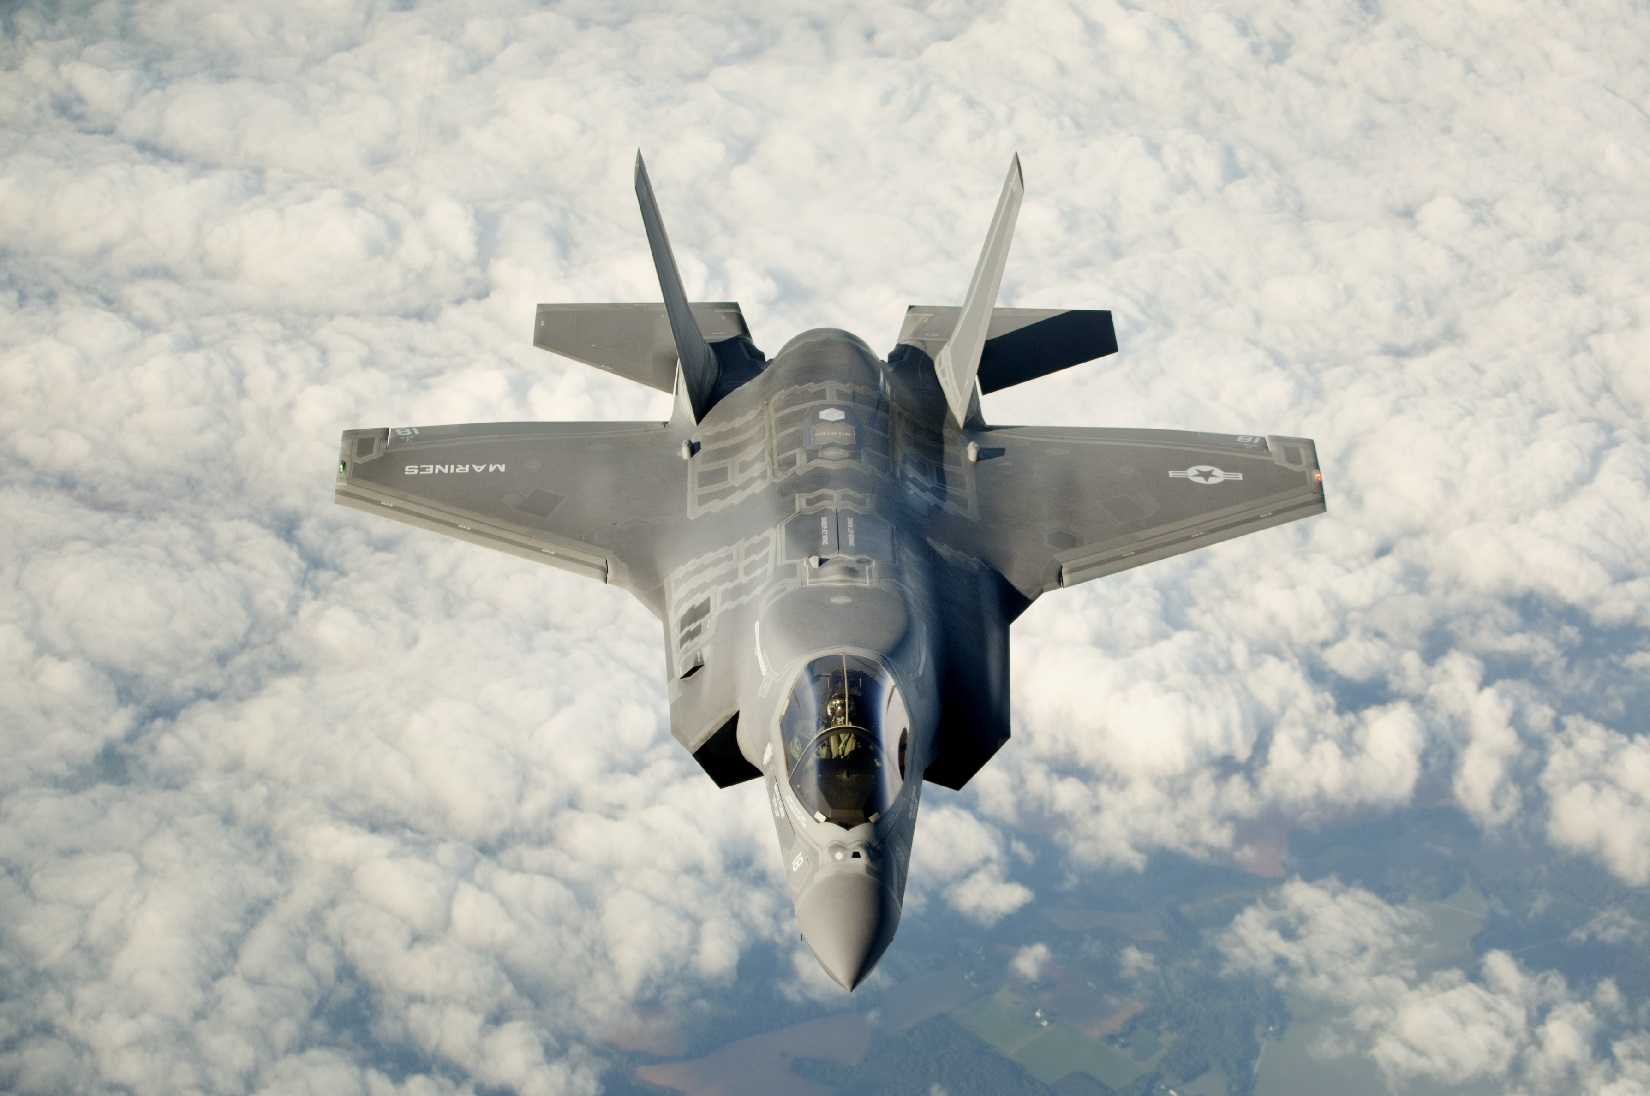 Israeli Air Force's F-35 Stealth Fighter Went Into Iran's Airspace: